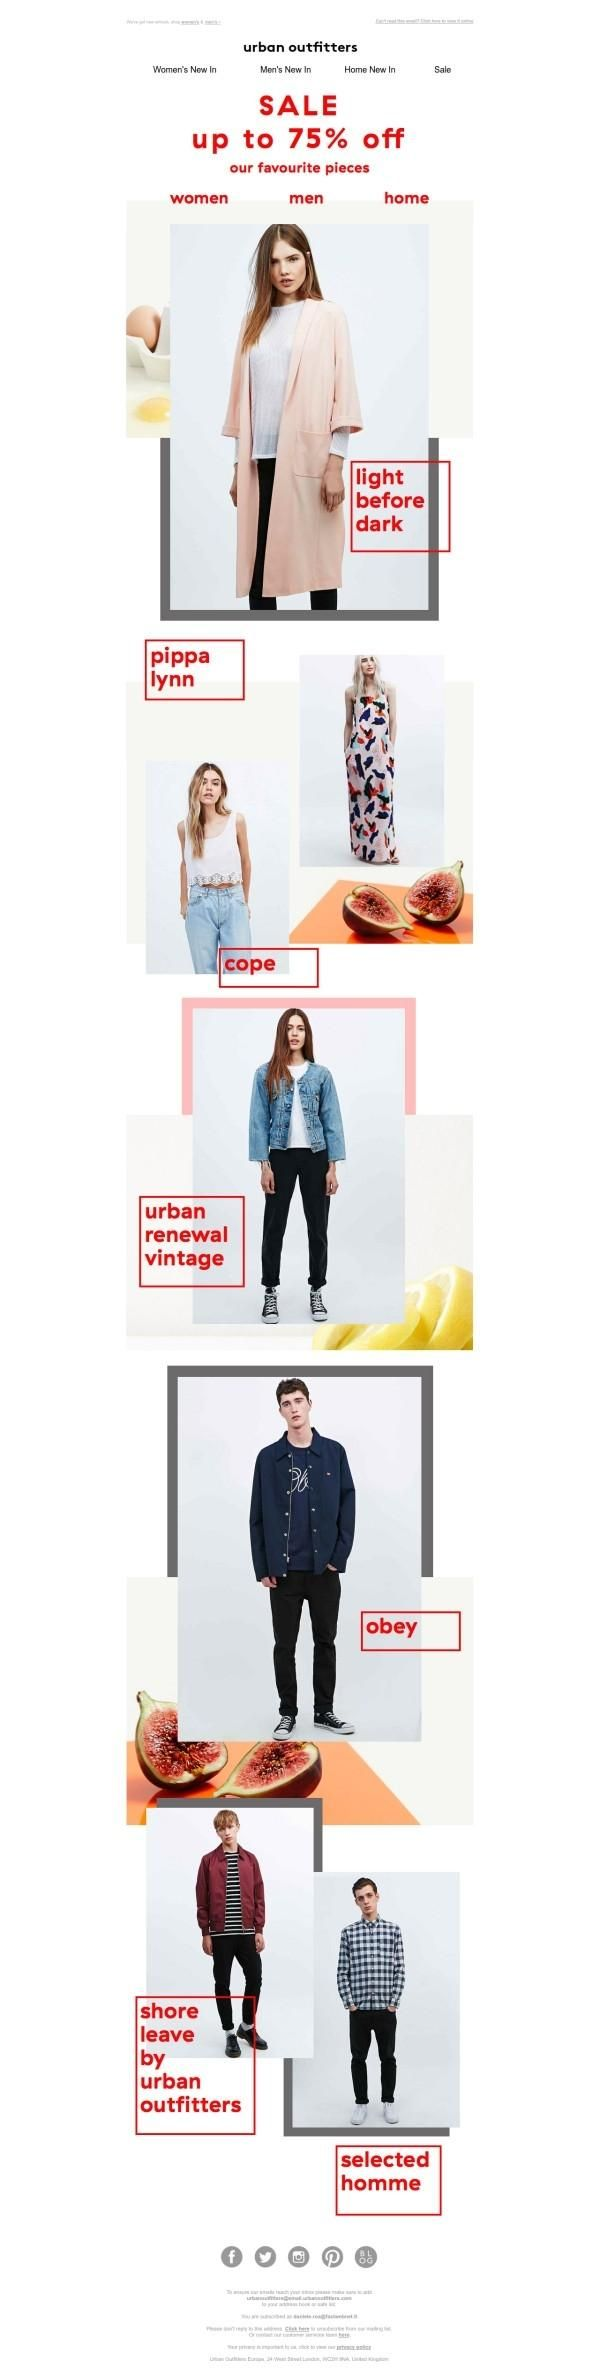 E-mail newsletter by Urban Outfitters March 2015 -  http://ebm.email.urbanoutfitters.co.uk/c/tag/hBVGBODA-QMoQB9AQohNsu7Ps1H/doc.html?t_params=EMAIL%3Ddaniele.roa%2540fastwebnet.it... - a grouped images picture - Pin Them All